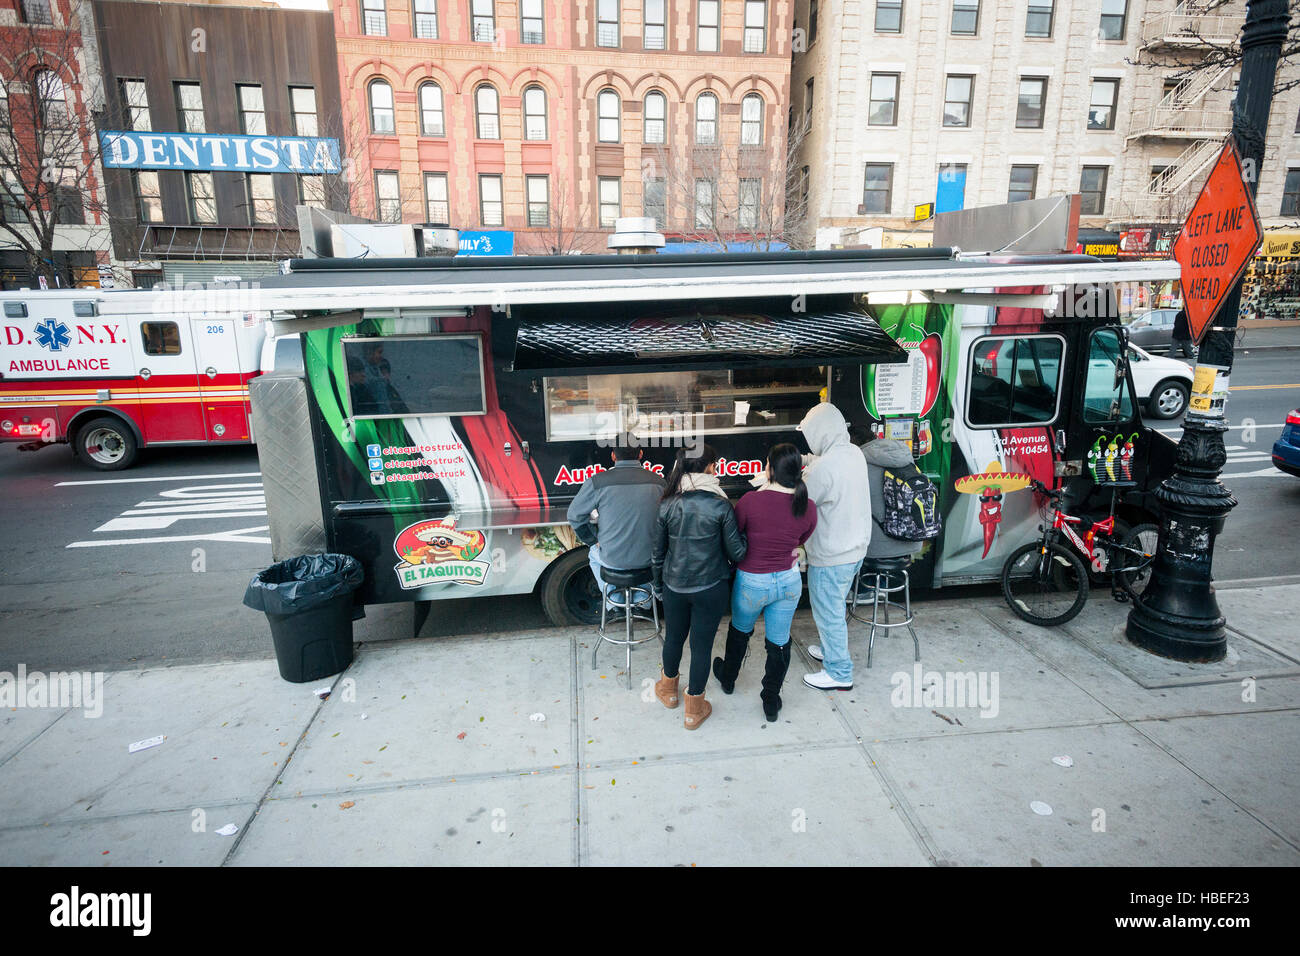 Tamale Food Truck Chicago